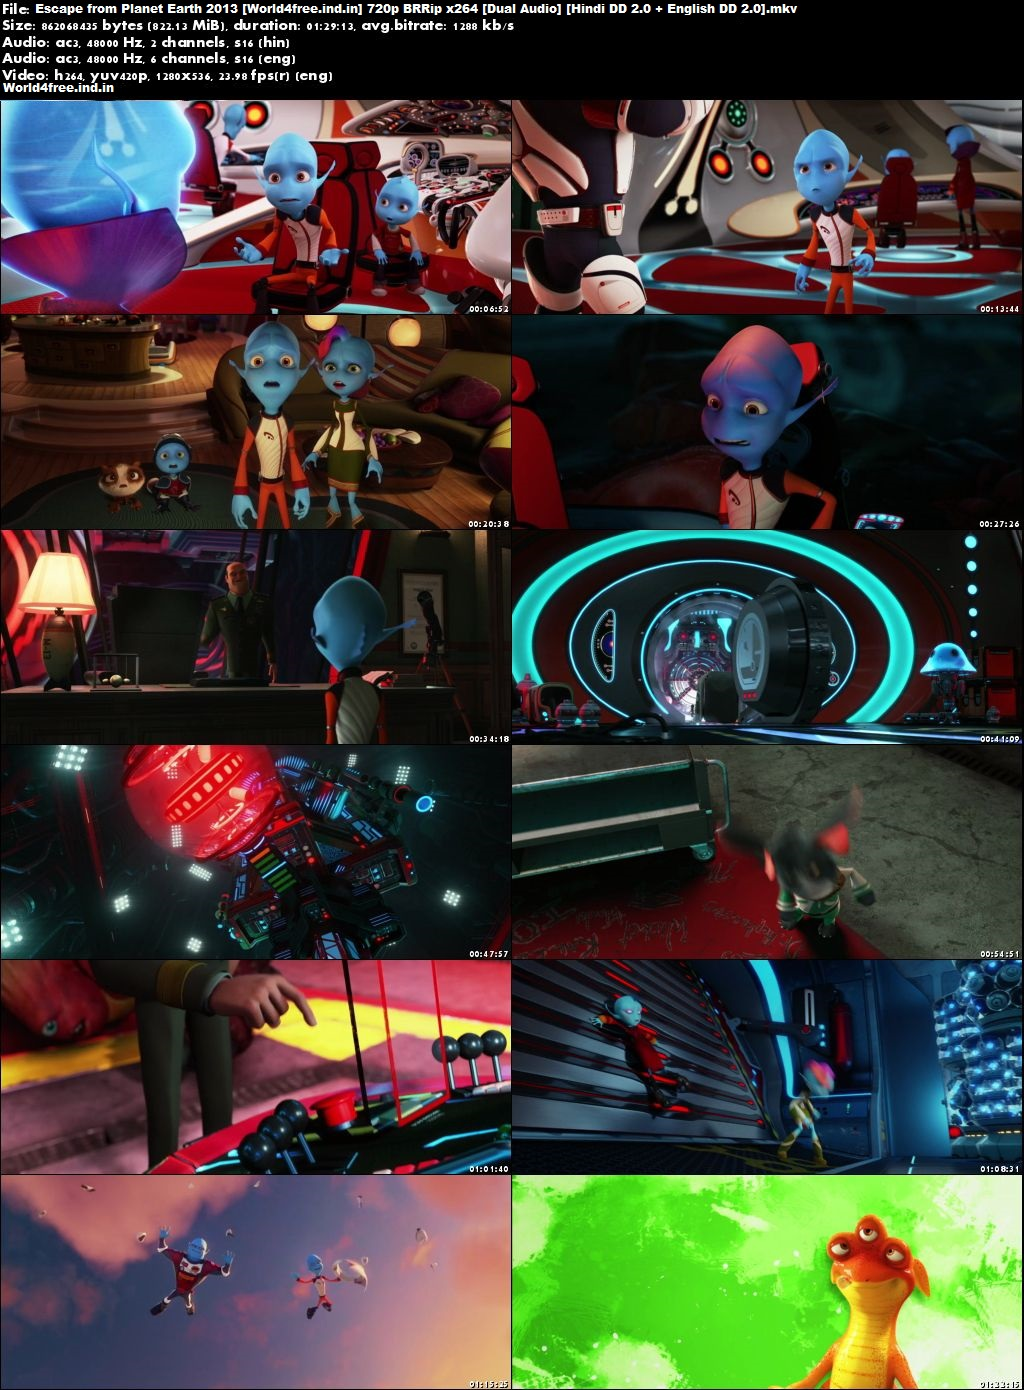 Escape from Planet Earth 2013 world4free.ind.in Dual Audio BRRip 720p Download